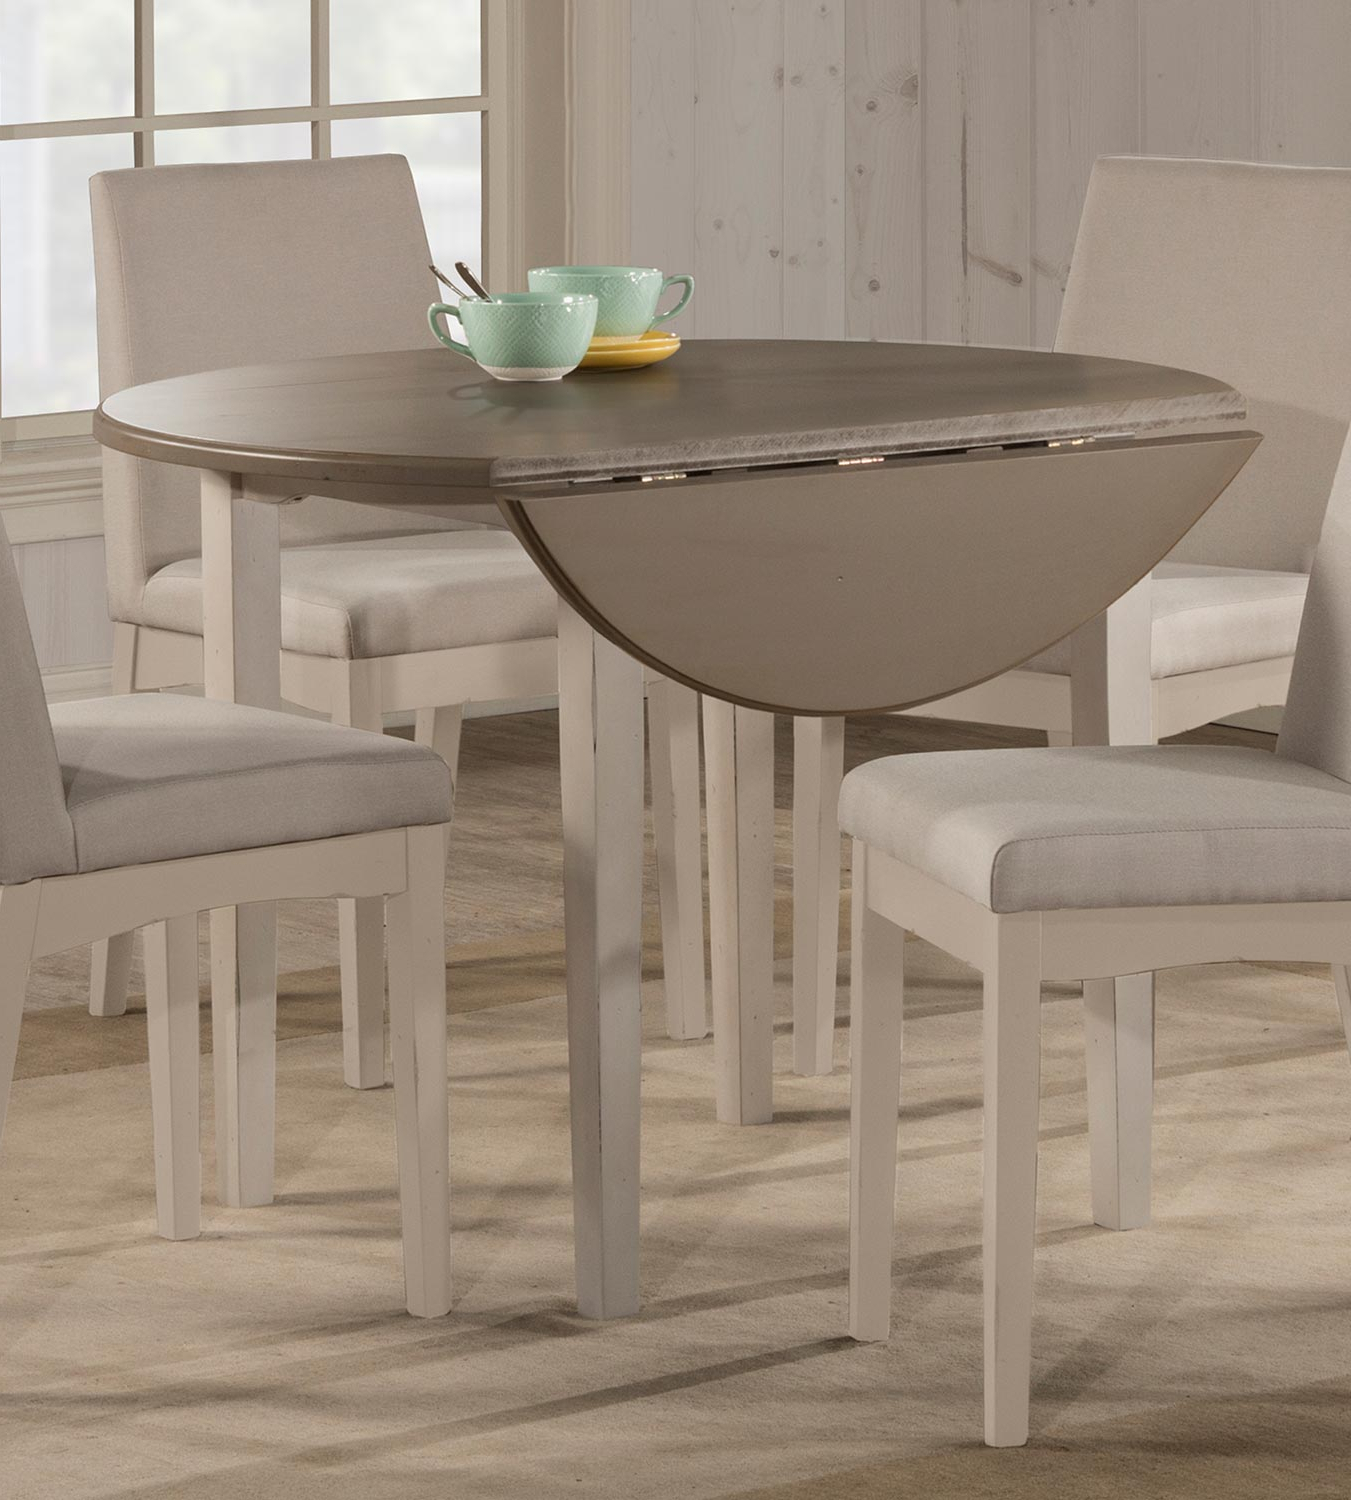 Transitional Drop Leaf Casual Dining Tables For Well Known Hillsdale Clarion Round Drop Leaf Dining Table – Gray/white (View 22 of 25)